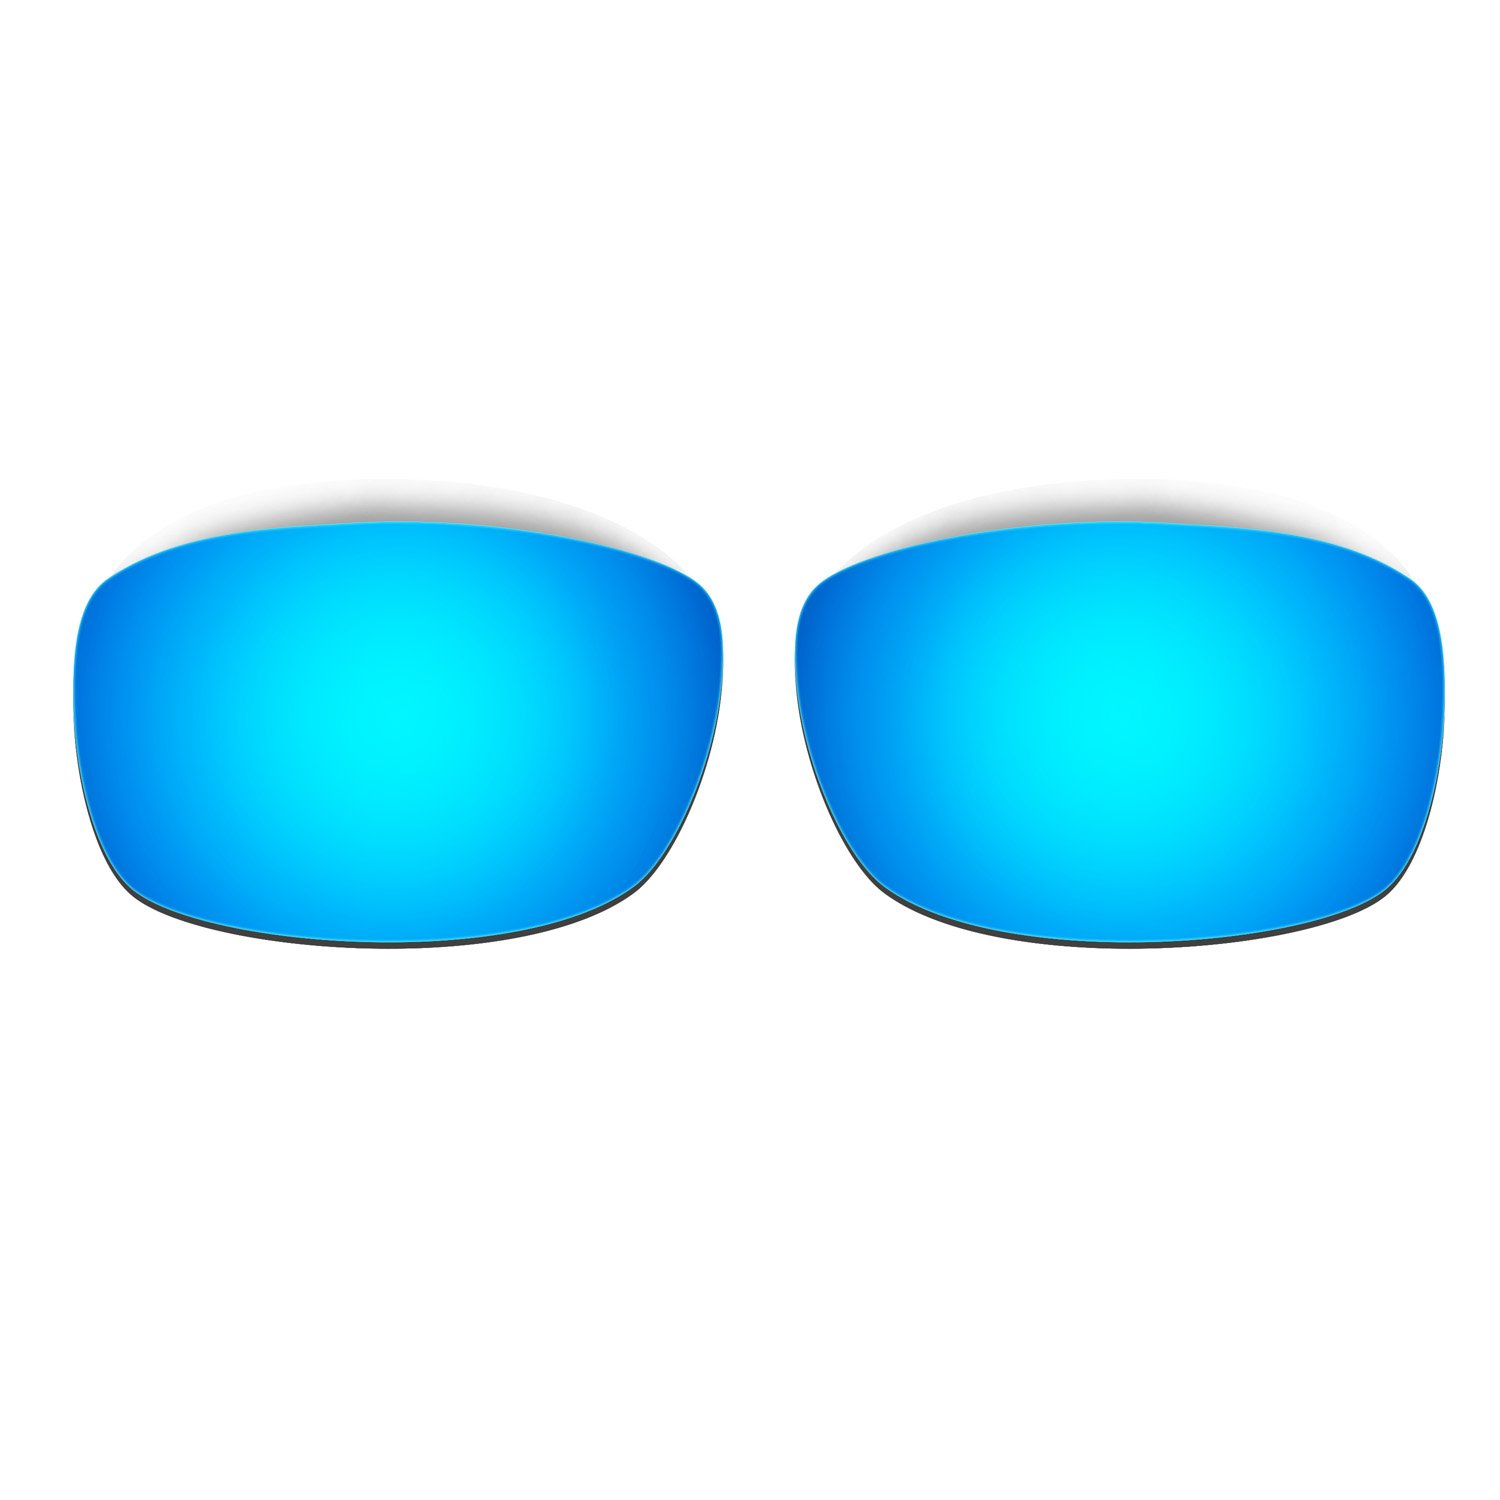 HKUCO Mens Replacement Lenses For Oakley Fives 3.0 Red/Blue/24K Gold/Emerald Green Sunglasses ySb4s